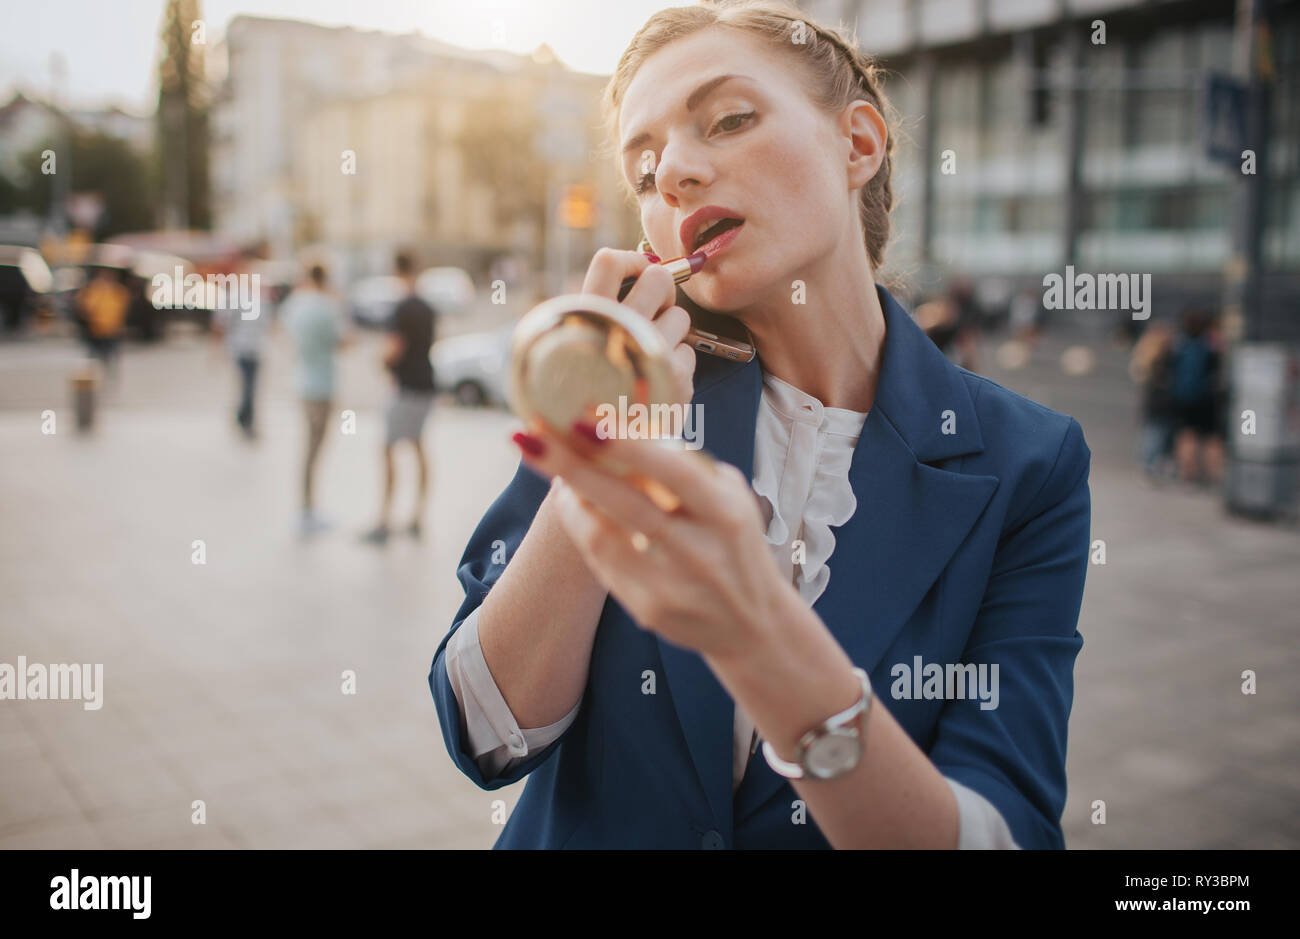 Busy woman is in a hurry, she does not have time, she is going to do make up and to speak on the phone on the go. Businesswoman doing multiple tasks - Stock Image